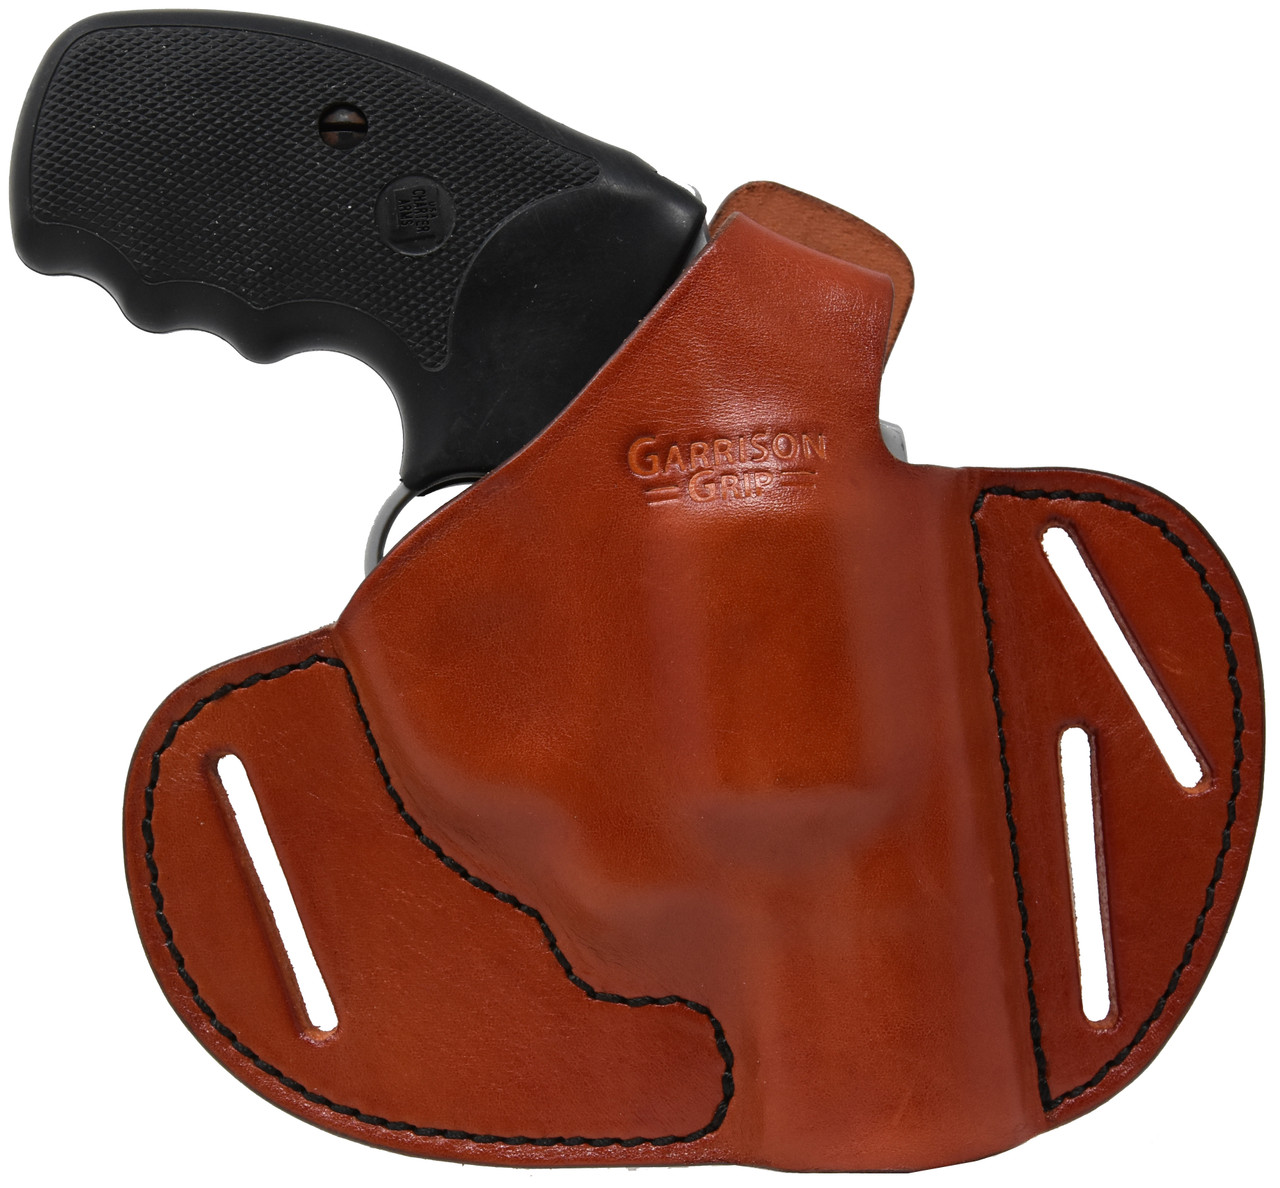 Garrison Grip Premium Full Grain Tan Italian Leather 2 Position Tactical  Holster Fits Charter Arms 38 Special Undercover and Southpaw Revolvers